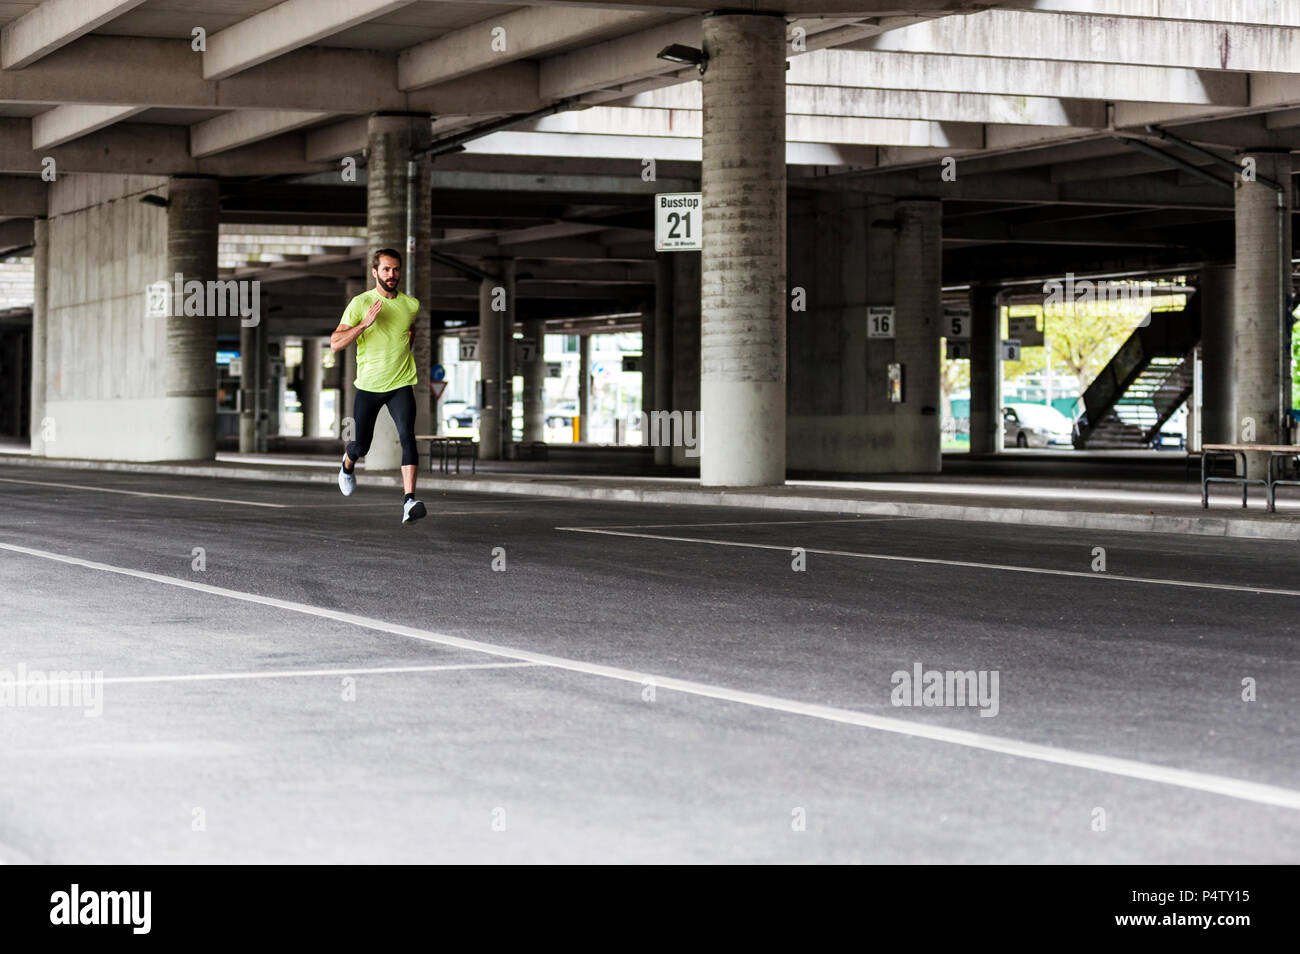 Man running on a street - Stock Image